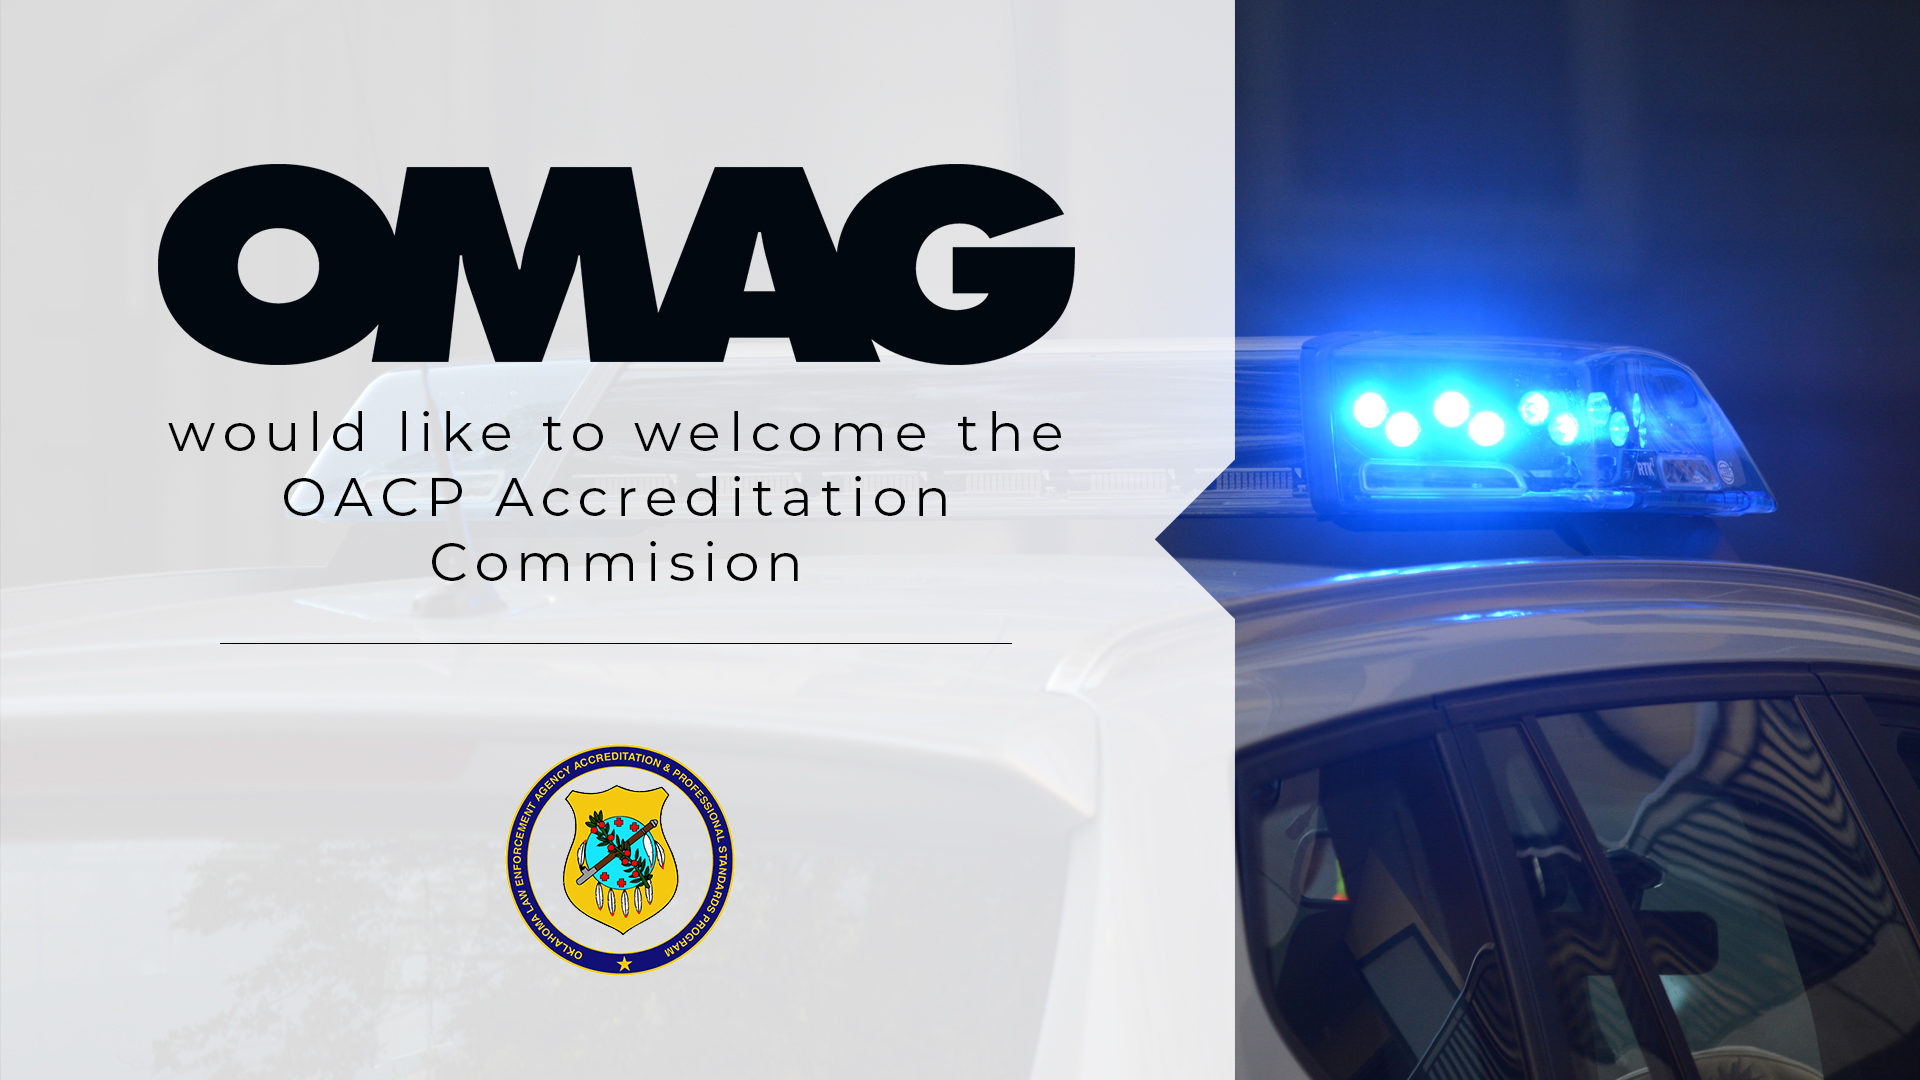 OACP Accreditation Commision.jpg